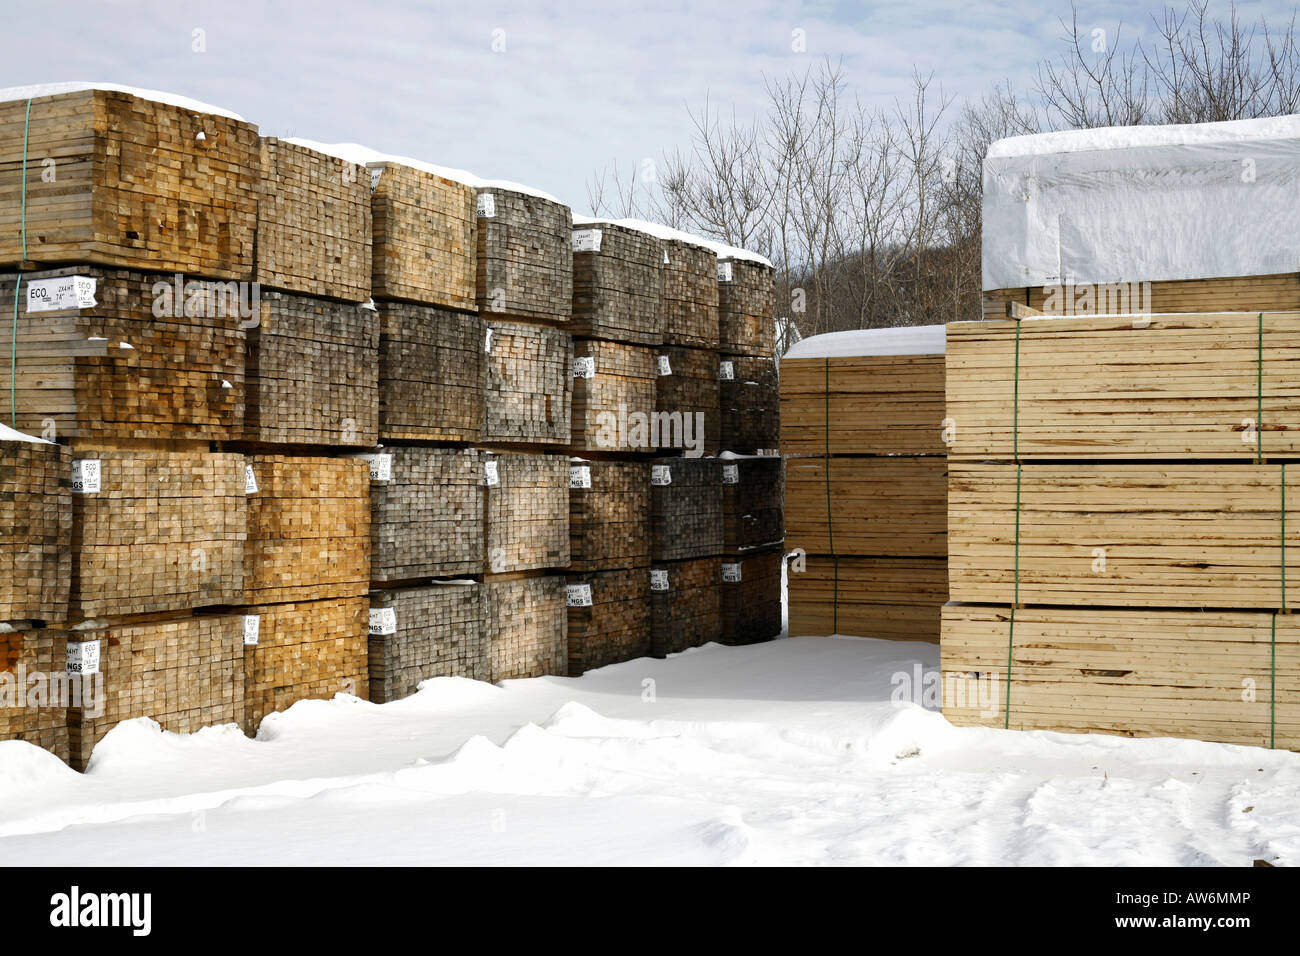 Piles of softwood lumber in winter - Stock Image